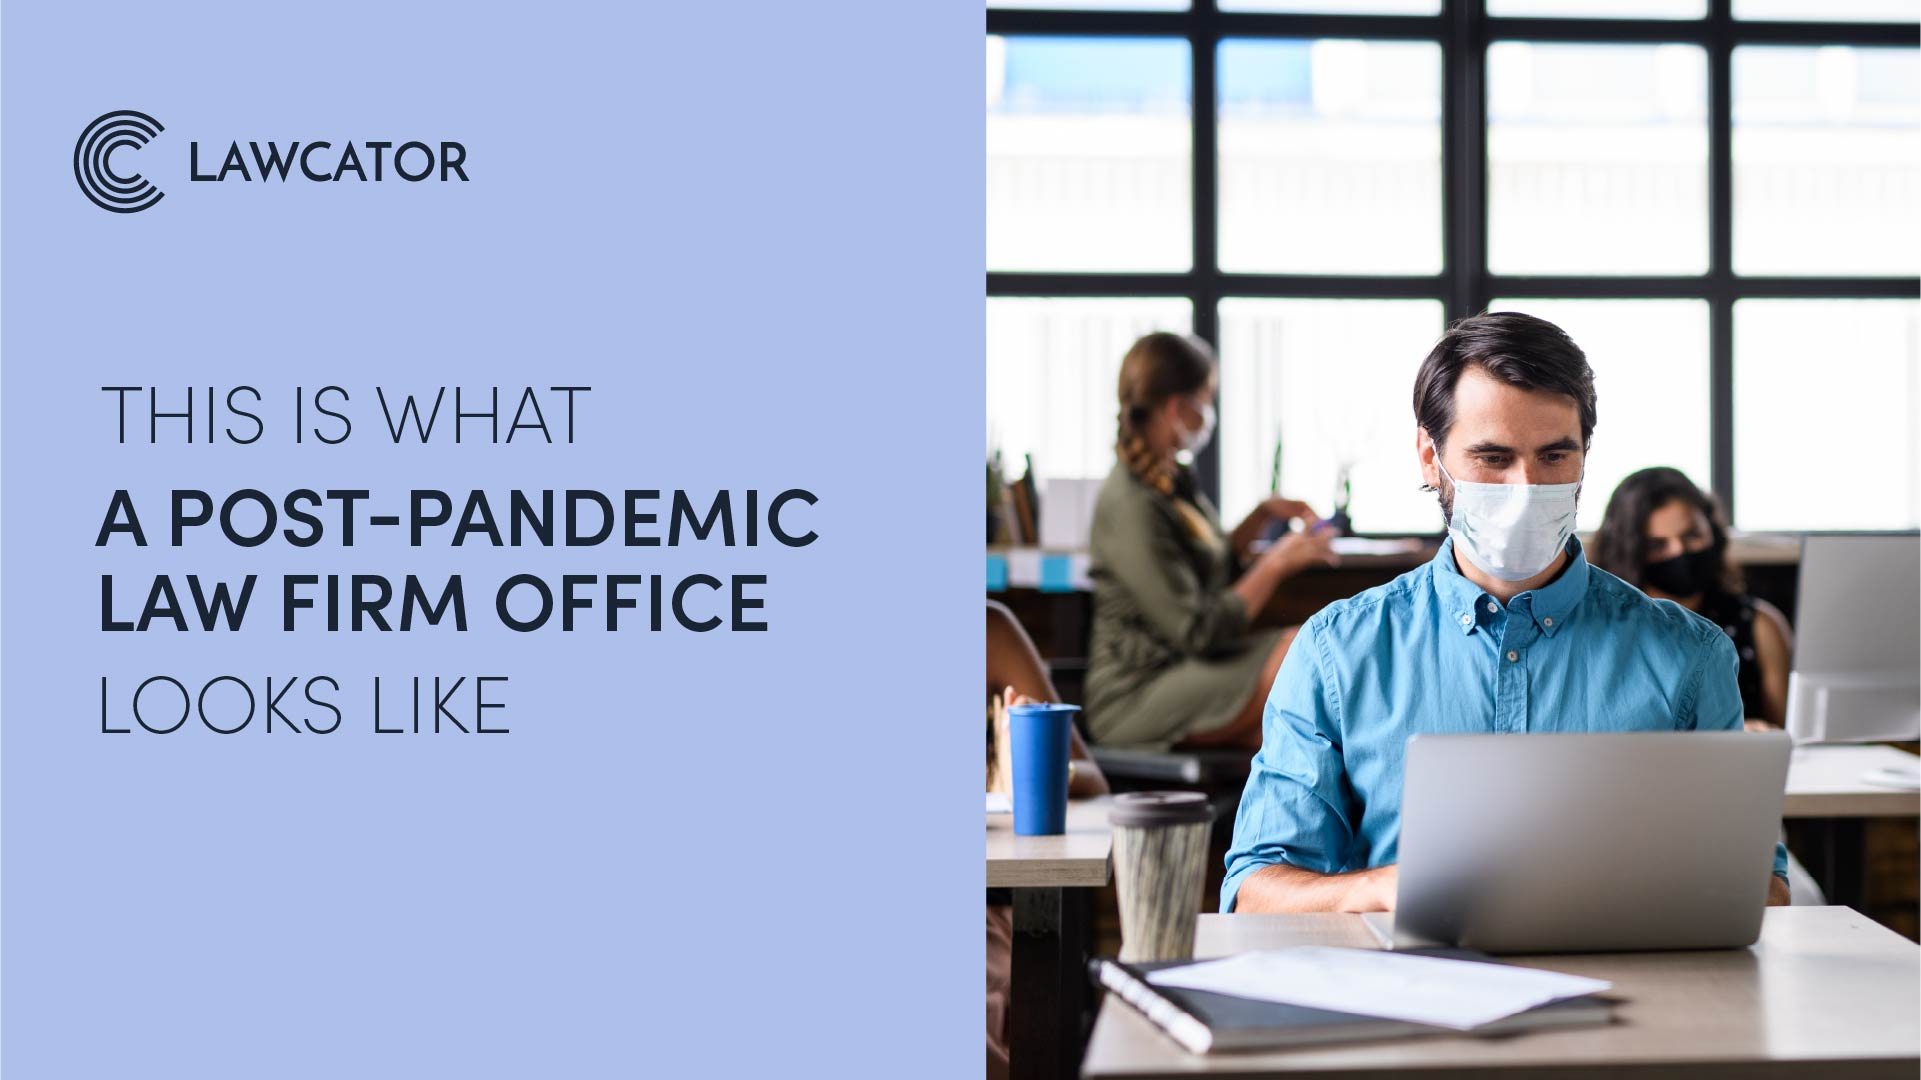 This Is What a Post-Pandemic Law Firm Office Looks Like